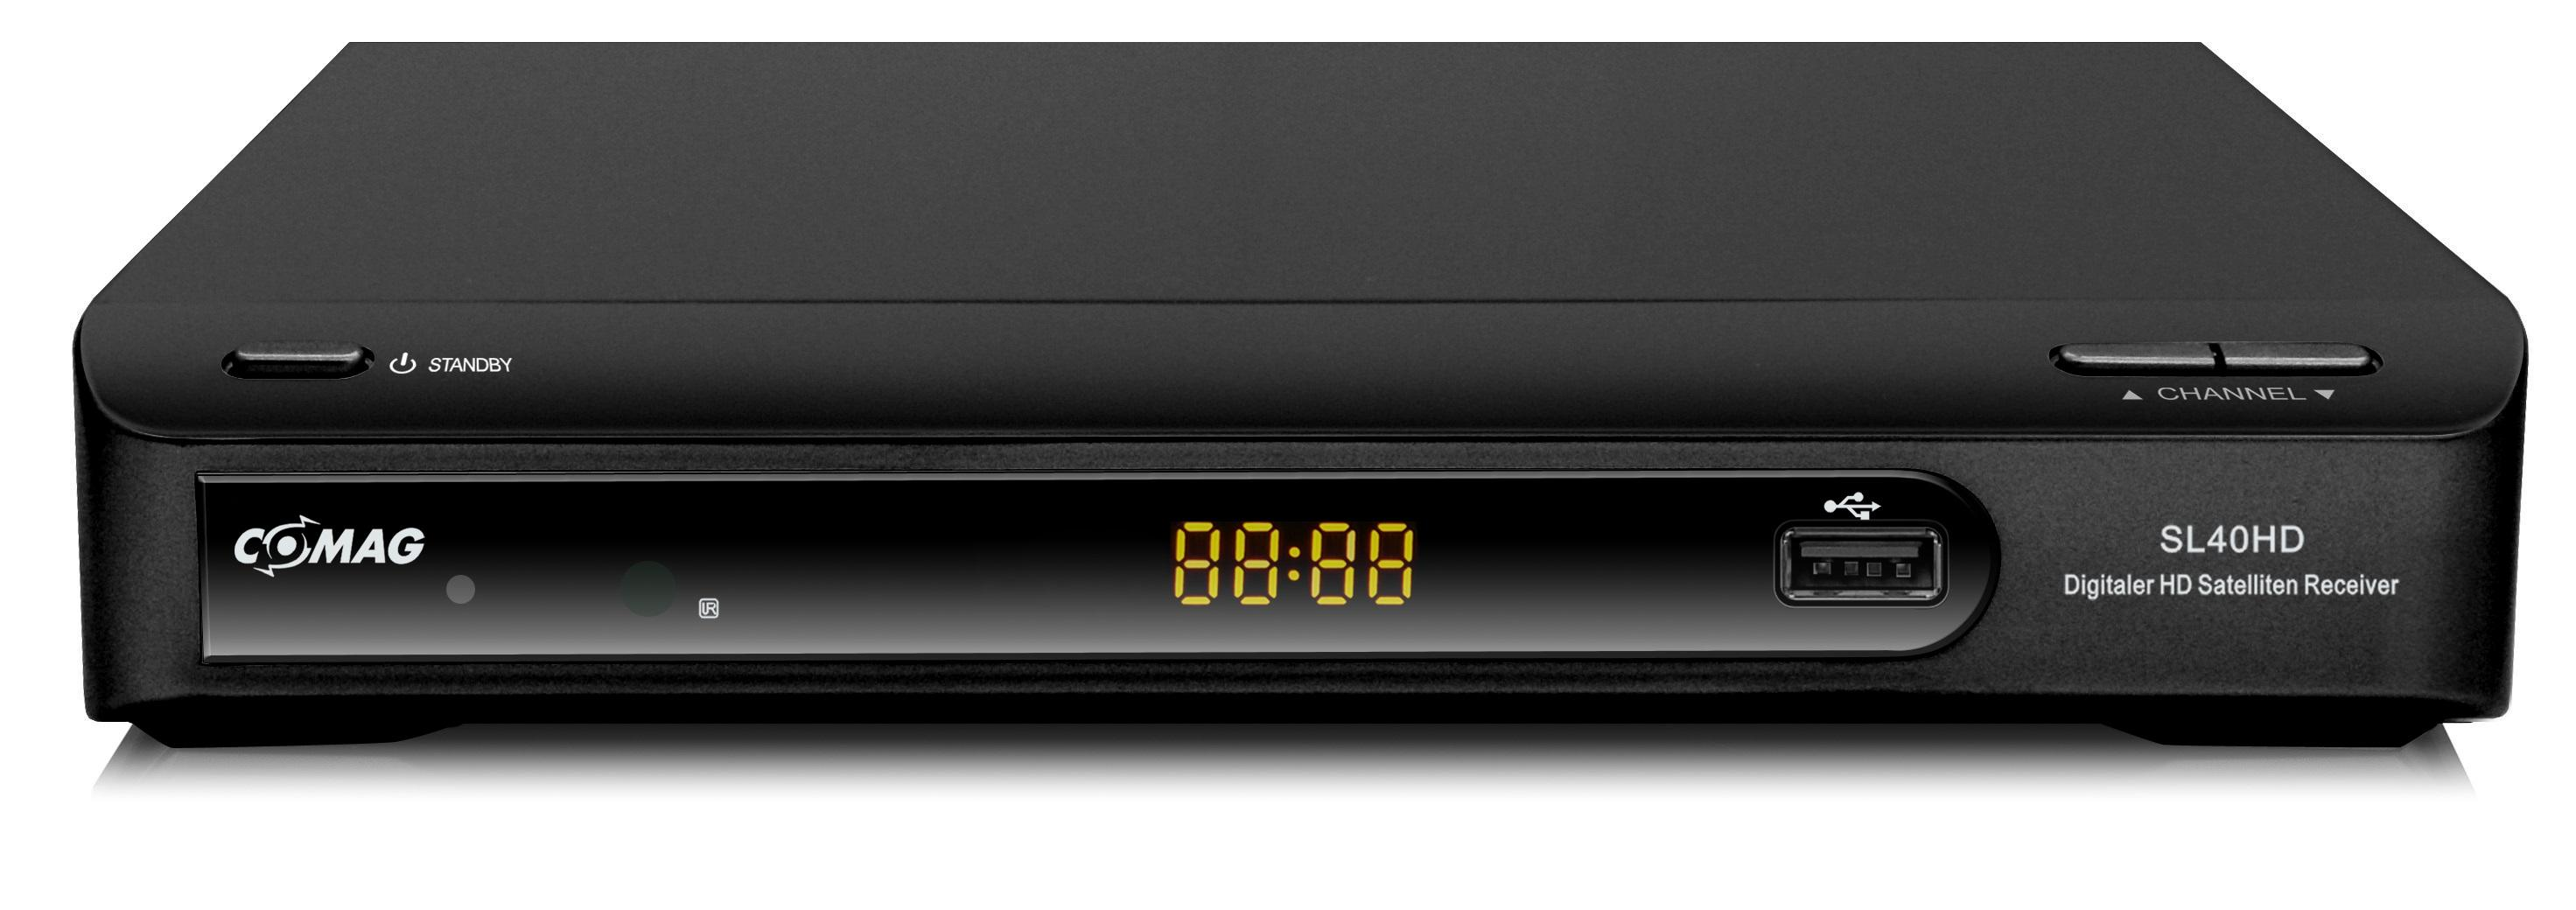 comag sl40 hd satelliten receiver pvr ready dvb s2. Black Bedroom Furniture Sets. Home Design Ideas